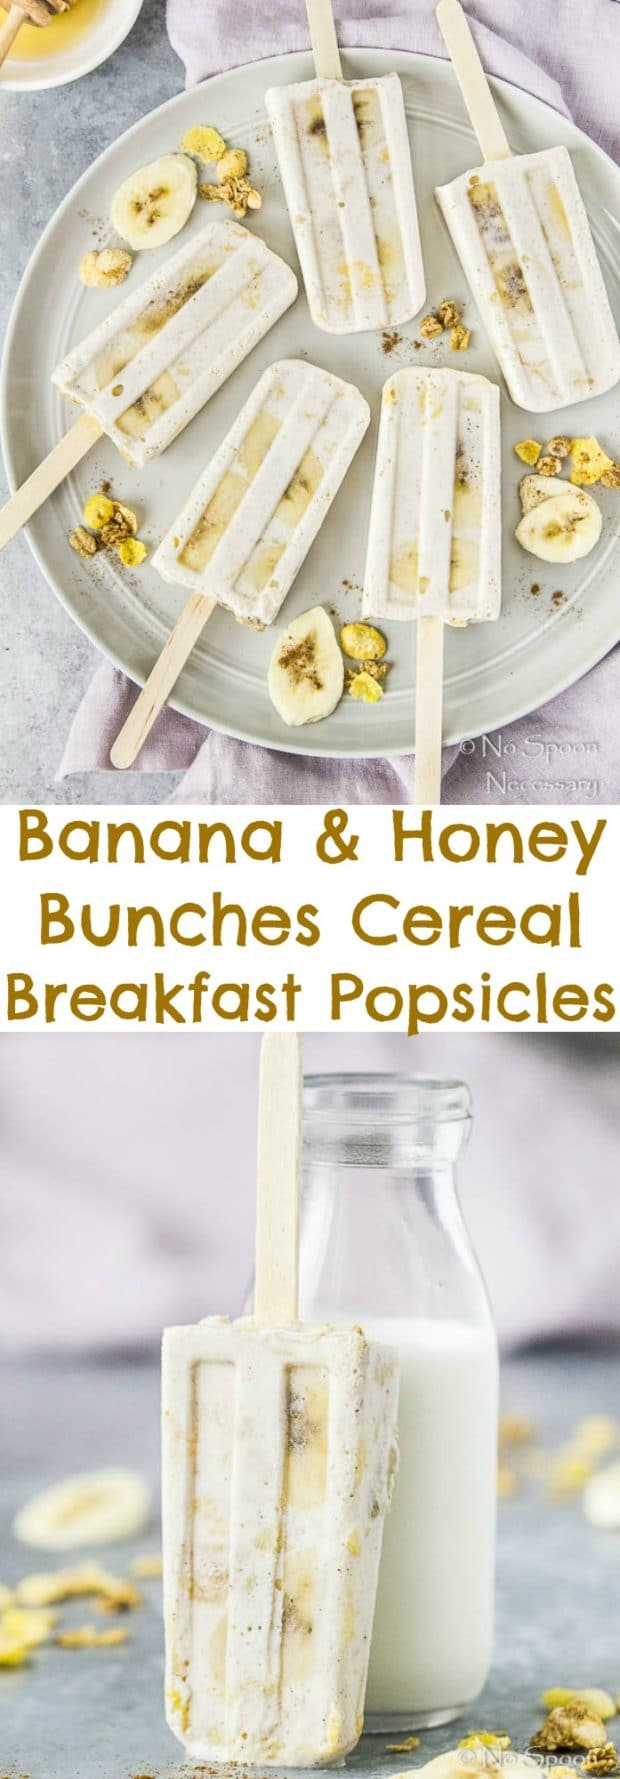 Banana & Honey Bunches Cereal Breakfast Popsicles-long pin2